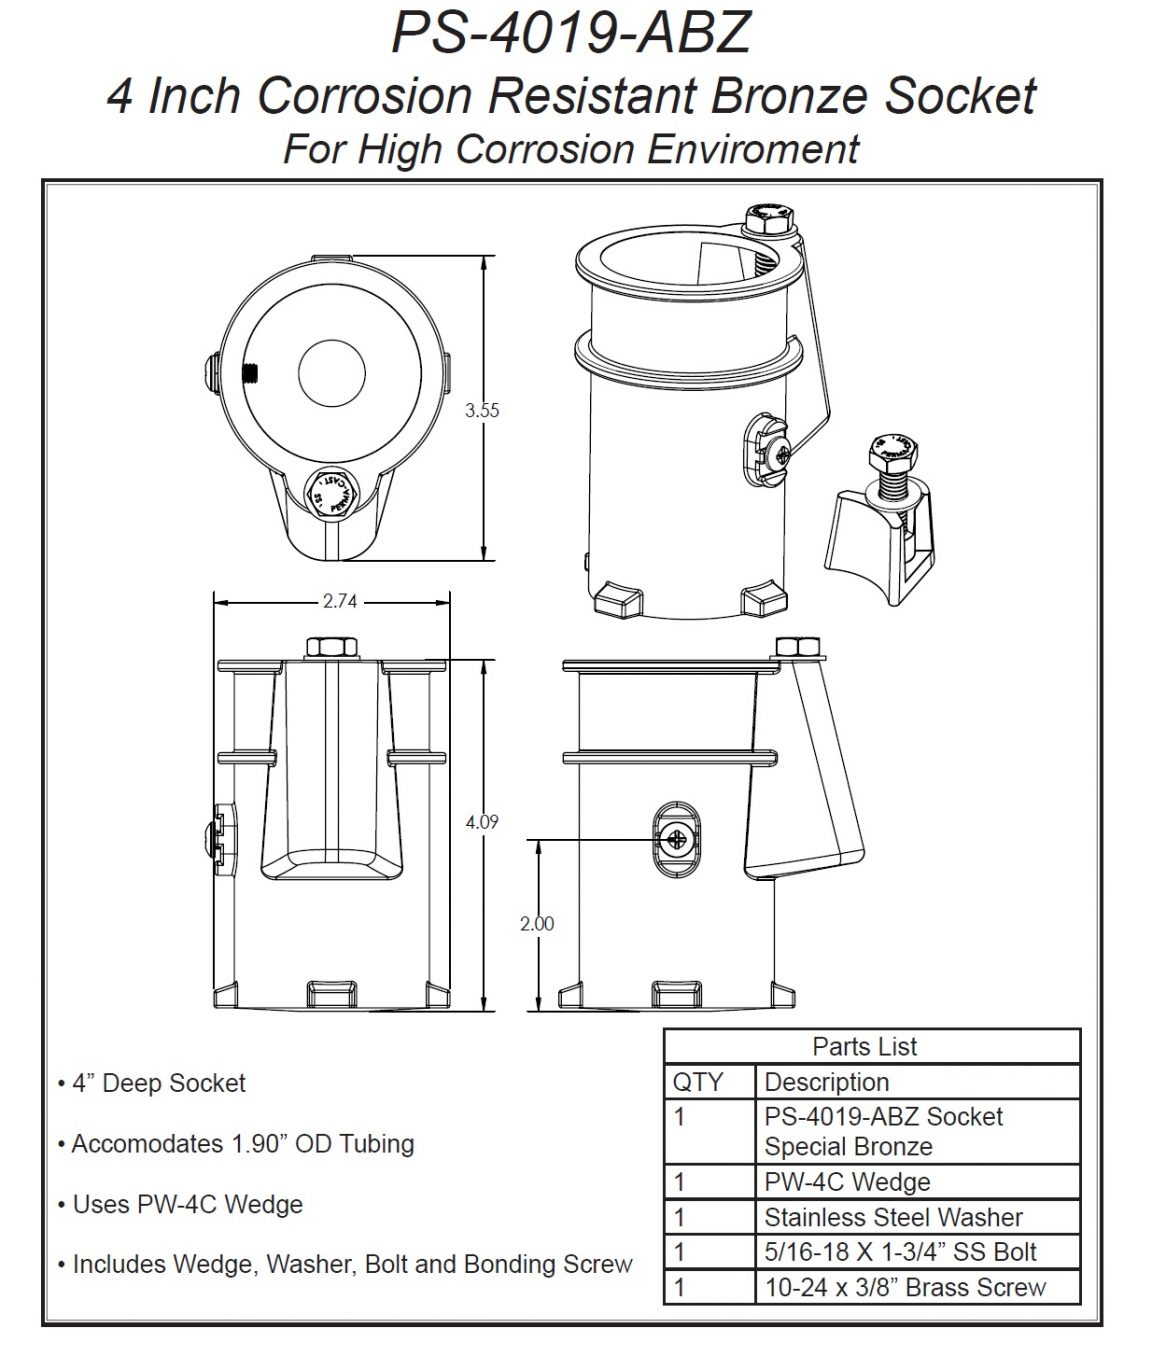 pentair superflo 1.5 hp wiring diagram Download-Hayward Super Pump 1 5 Hp Wiring Diagram Lovely Stunning Hayward Super Pump 2 Parts Diagram S 18-k